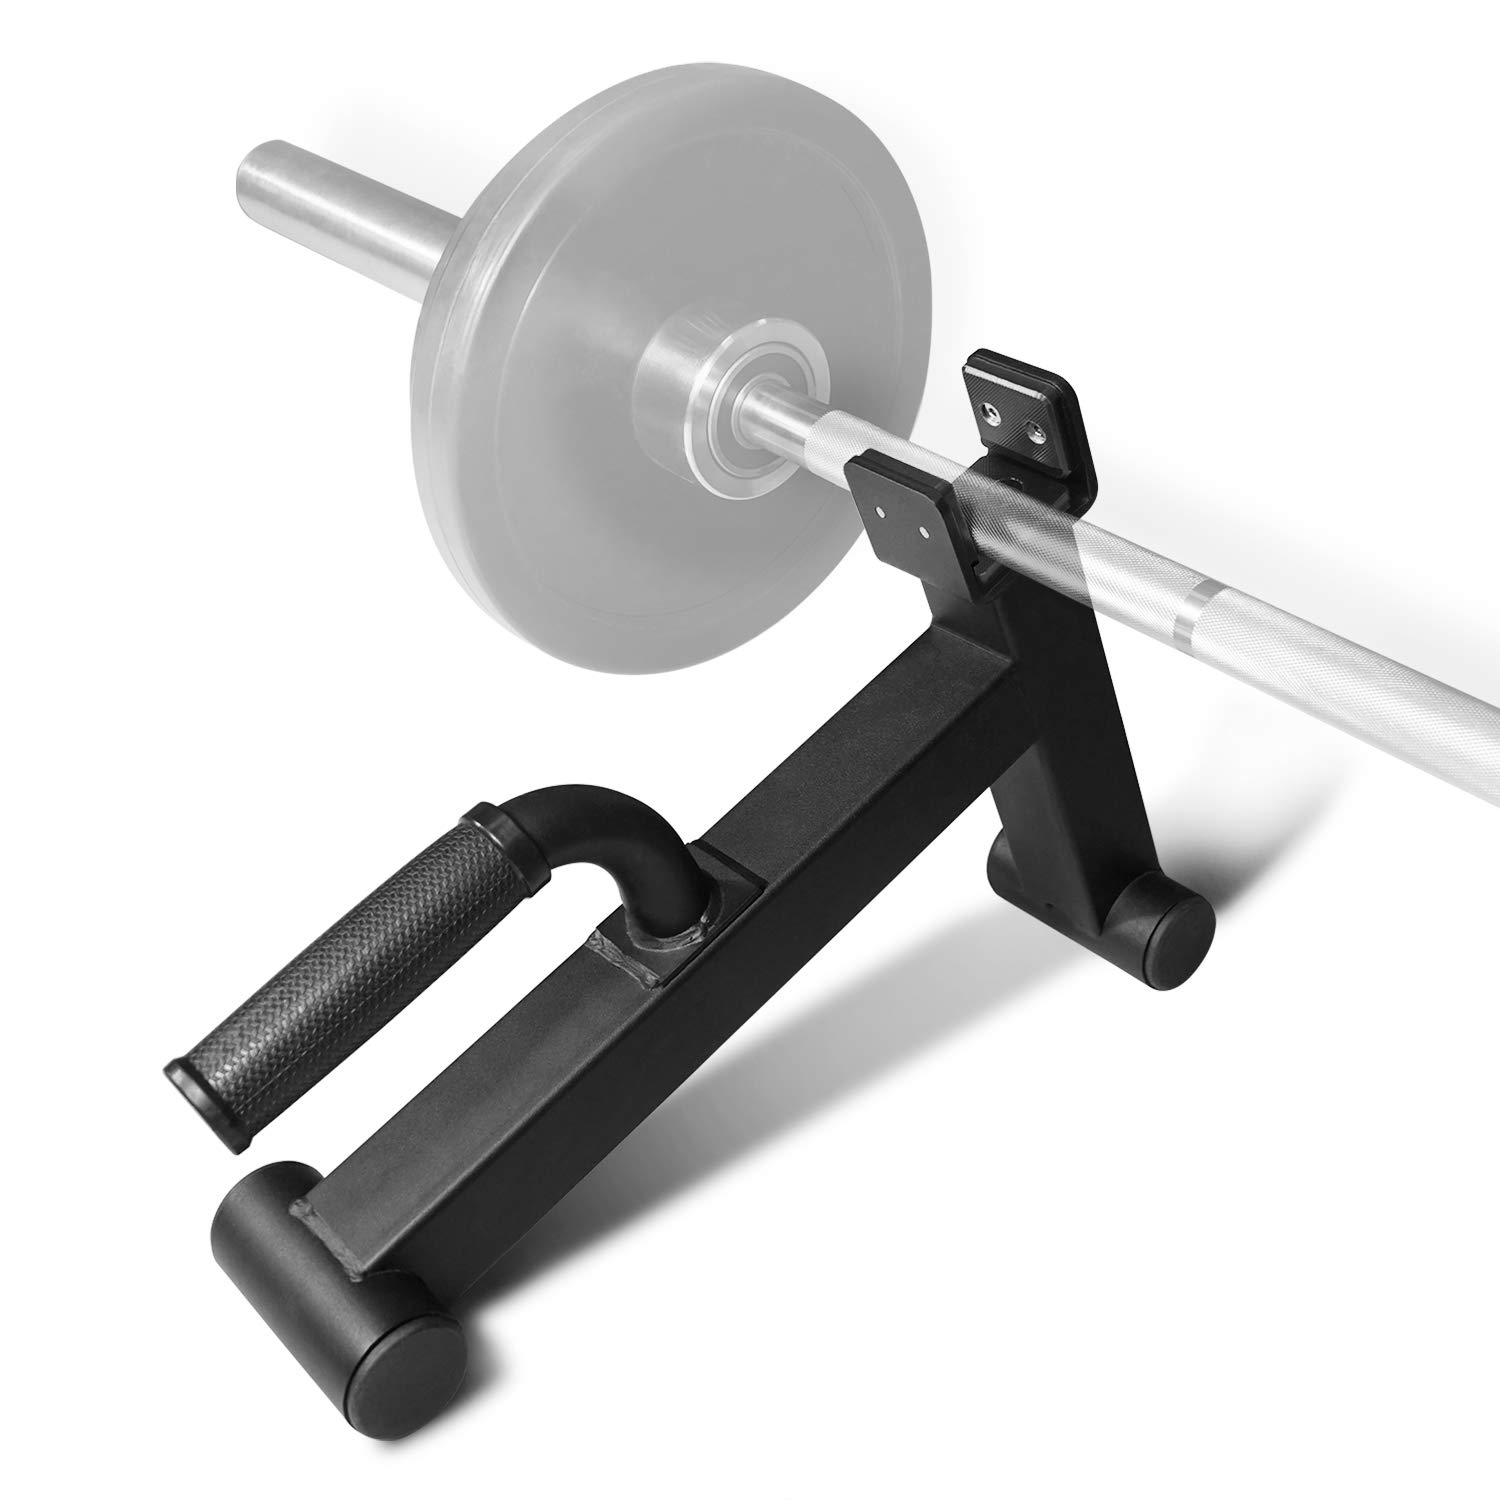 Yes4All Mini Deadlift Barbell Jack with Handle Ideal for Loading Unloading Weight Plates Deadlift Bar Jack Deadlift Jack Stand Black